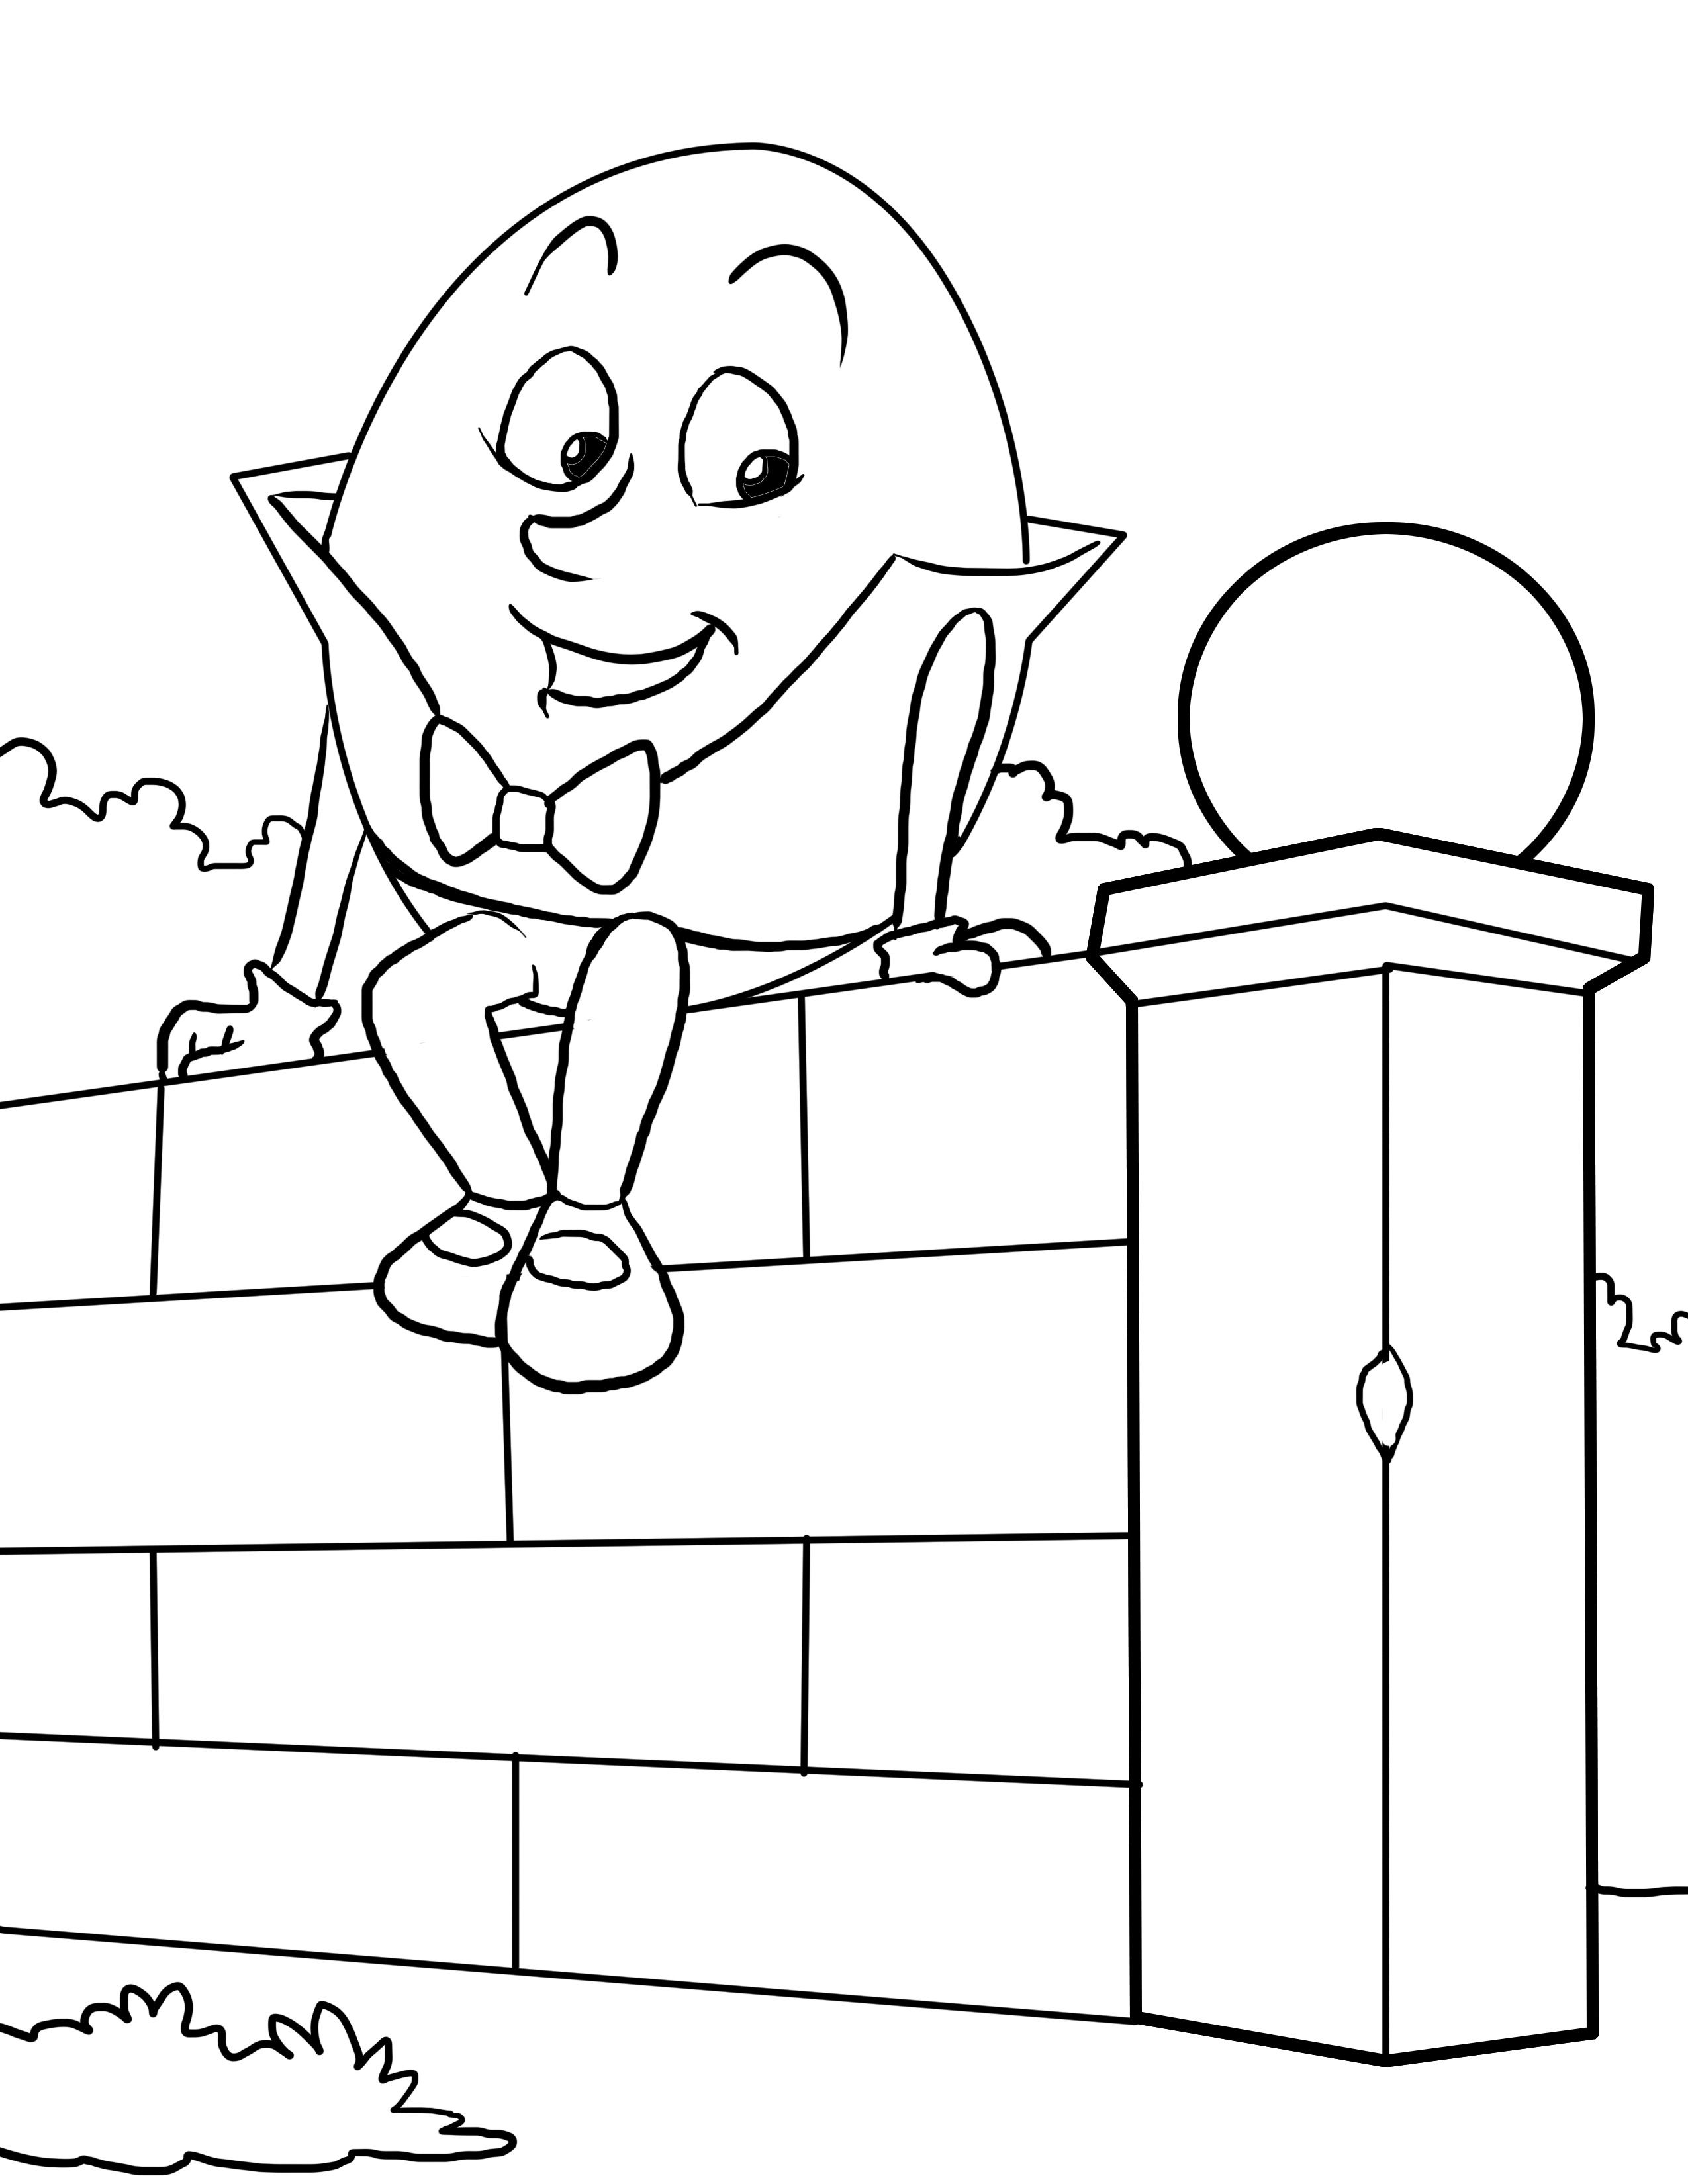 photograph relating to Humpty Dumpty Printable identify Humpty Dumpty Coloring Worksheet for Nursery Printable